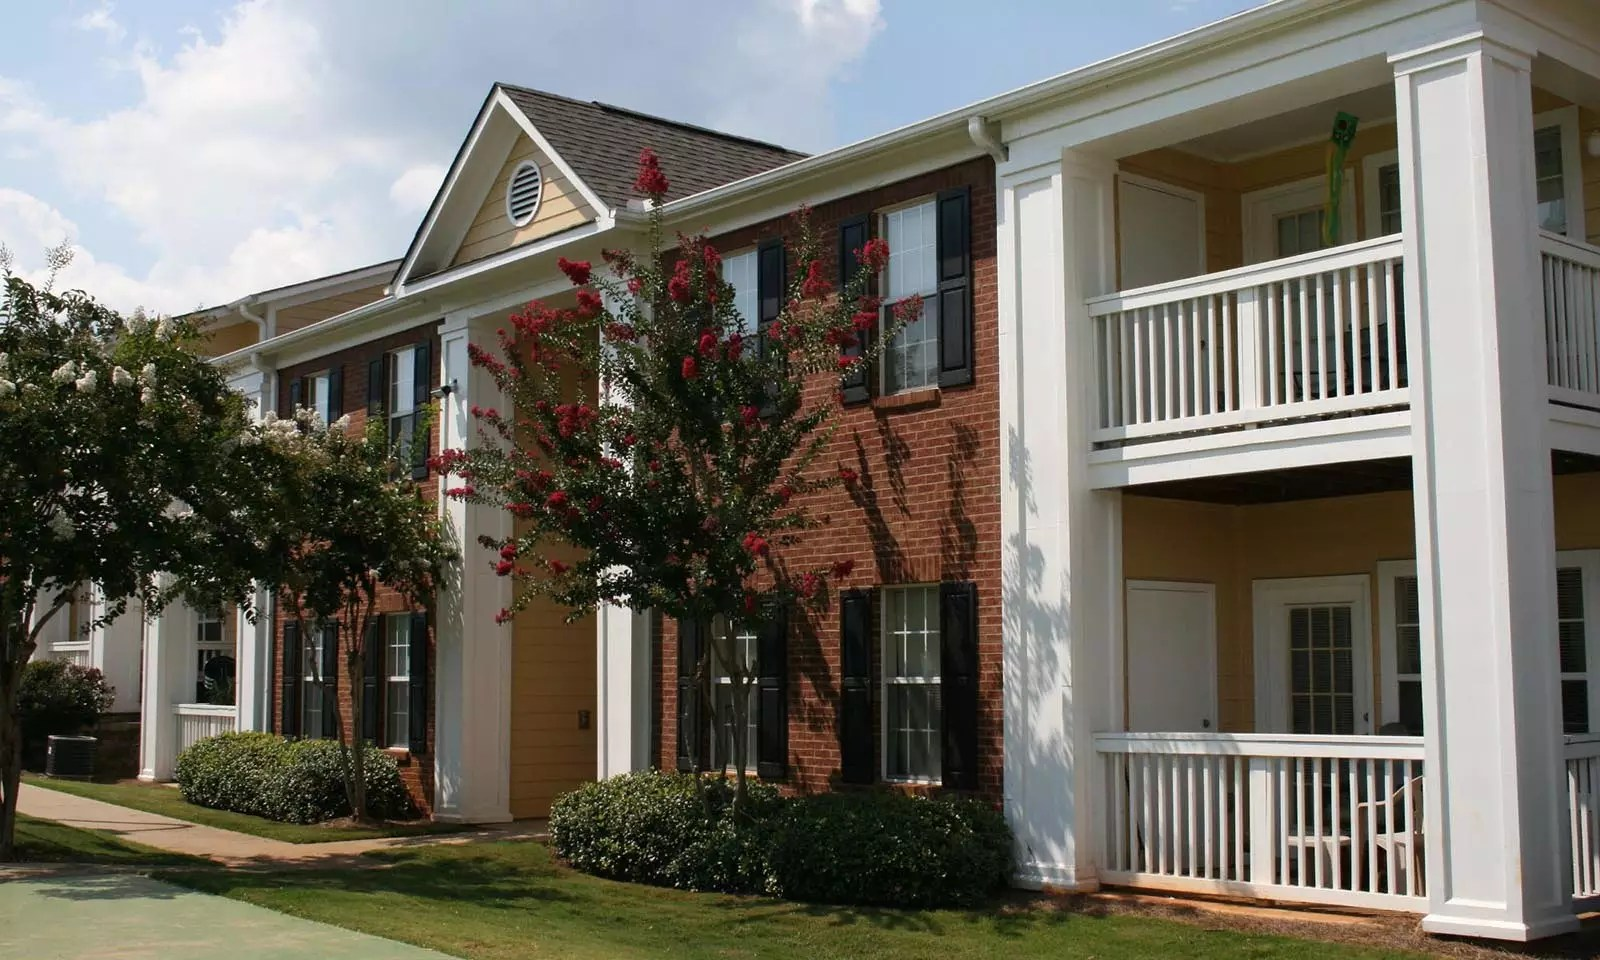 Garage Apartment For Rent In Dallas Dallas Ga Apartments For Rent In Paulding County Magnolia